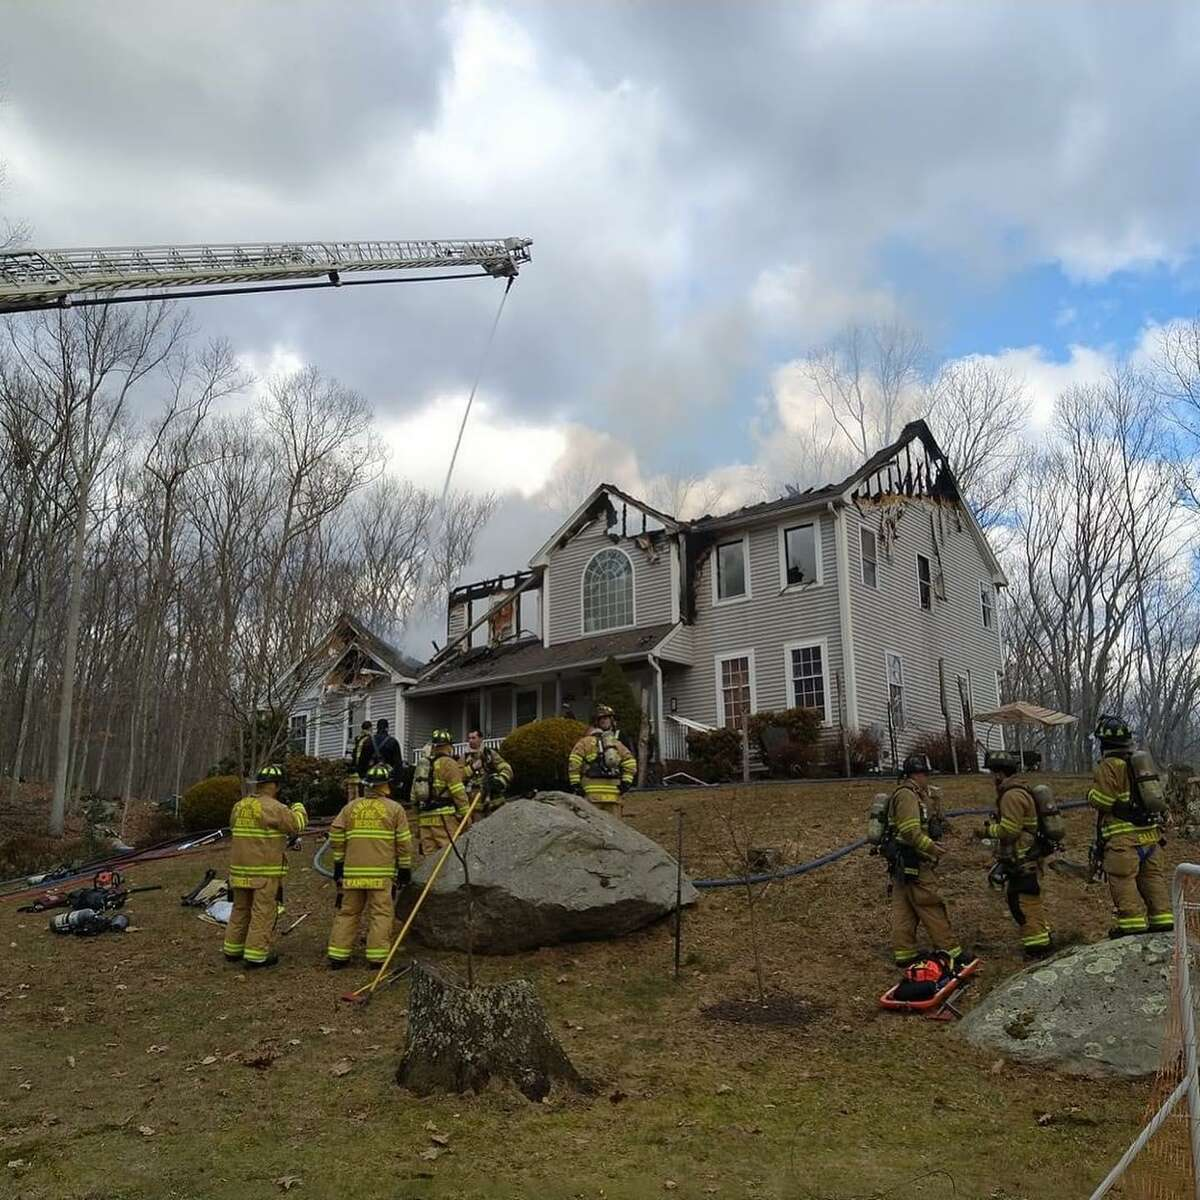 A Newtown family of 14 has been displaced following a Friday morning fire destroyed their Aspen Lane home.